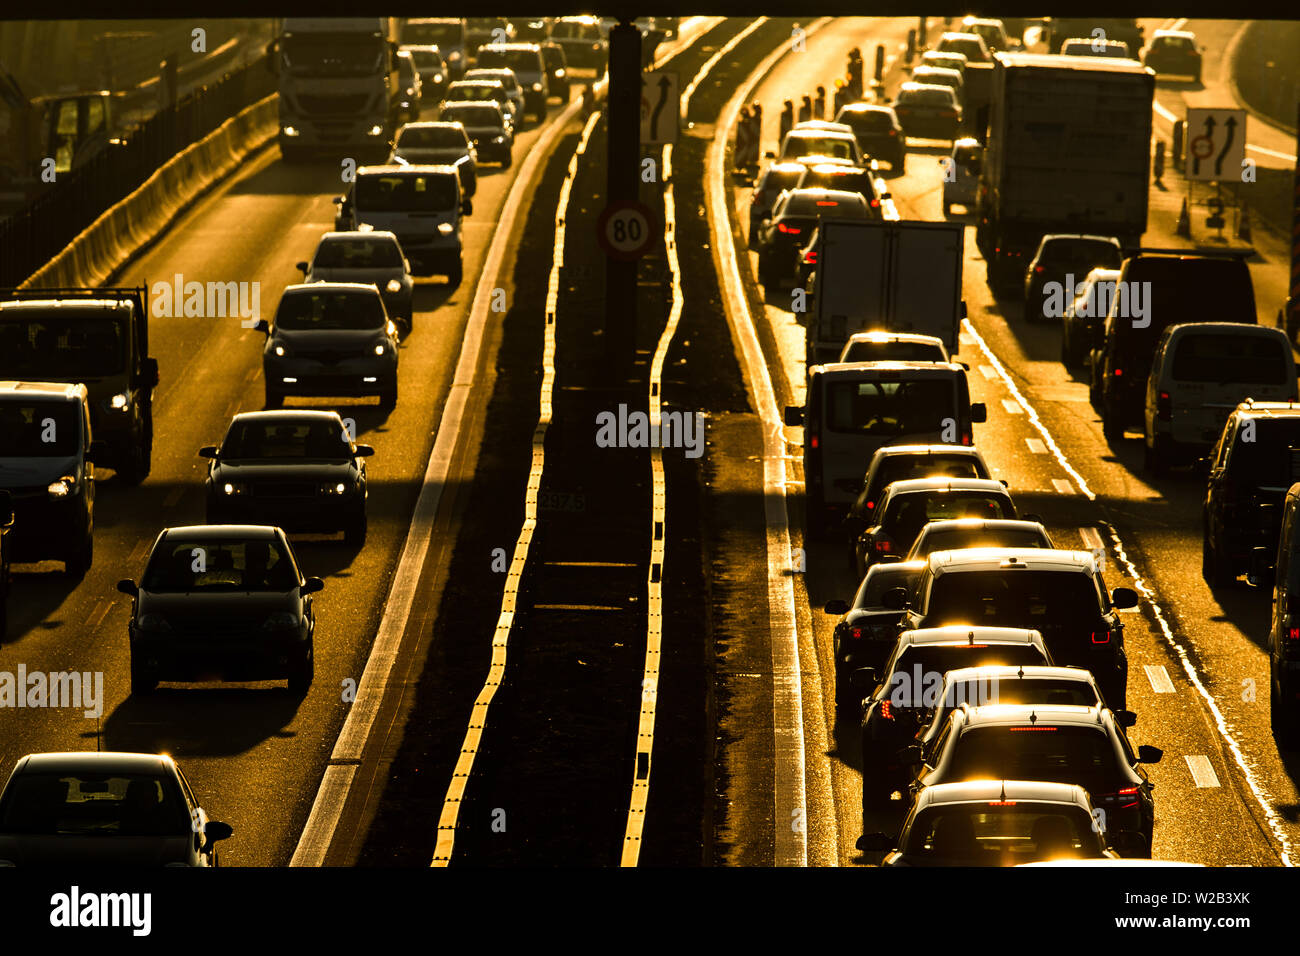 Heavy morning city traffic/congestion concept - cars going very slowly in a traffic jam during the morning rushhour - Stock Image